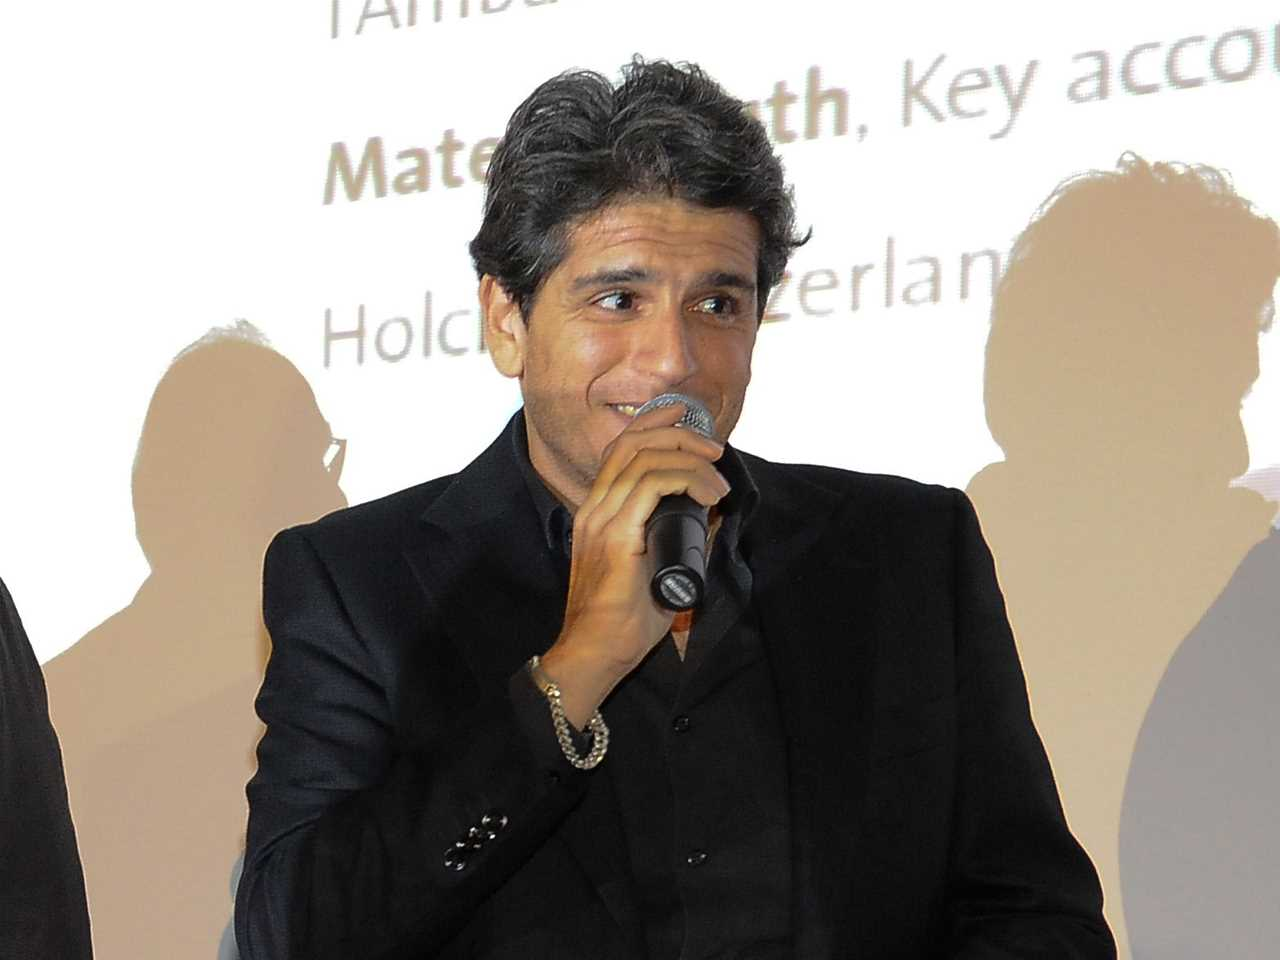 Faïçal Tadlaoui, Master of Ceremonies.